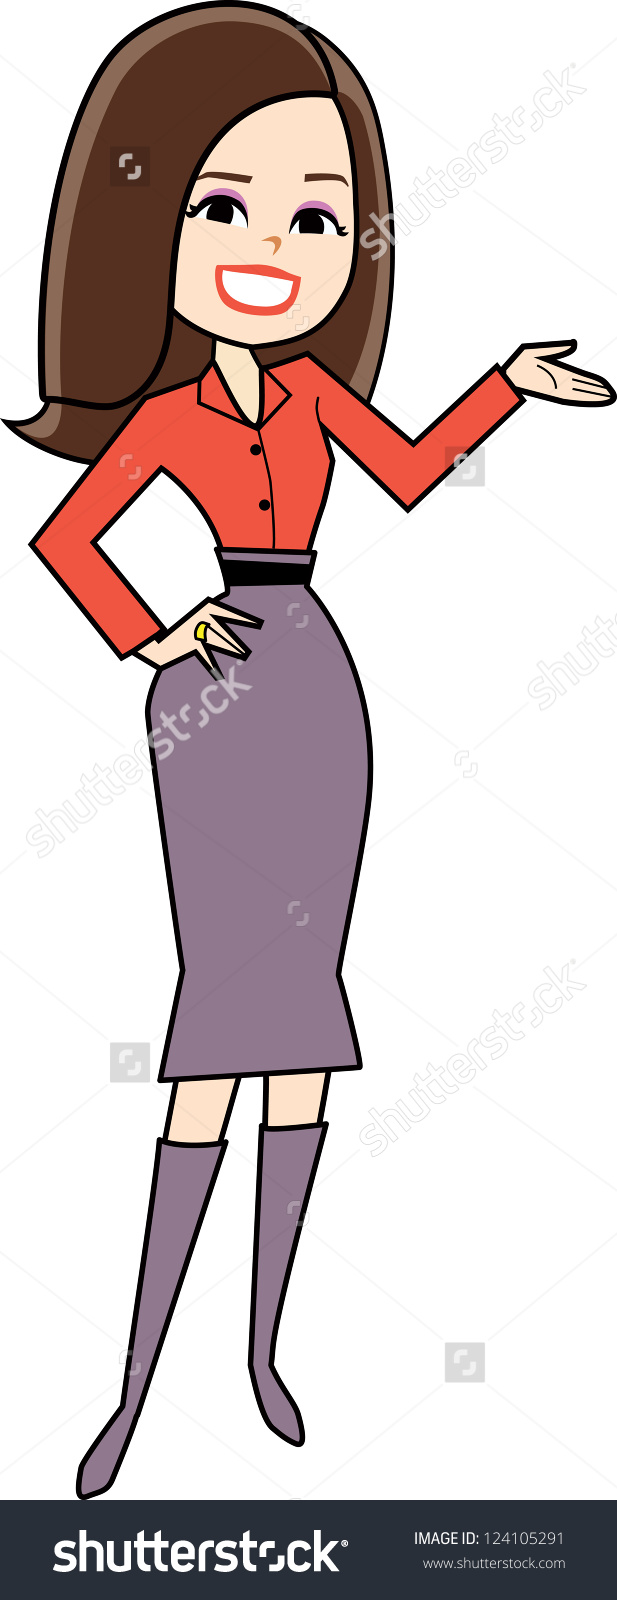 Cartoon Woman Clipart Retro Style Drawing Stock Vector 124105291 .